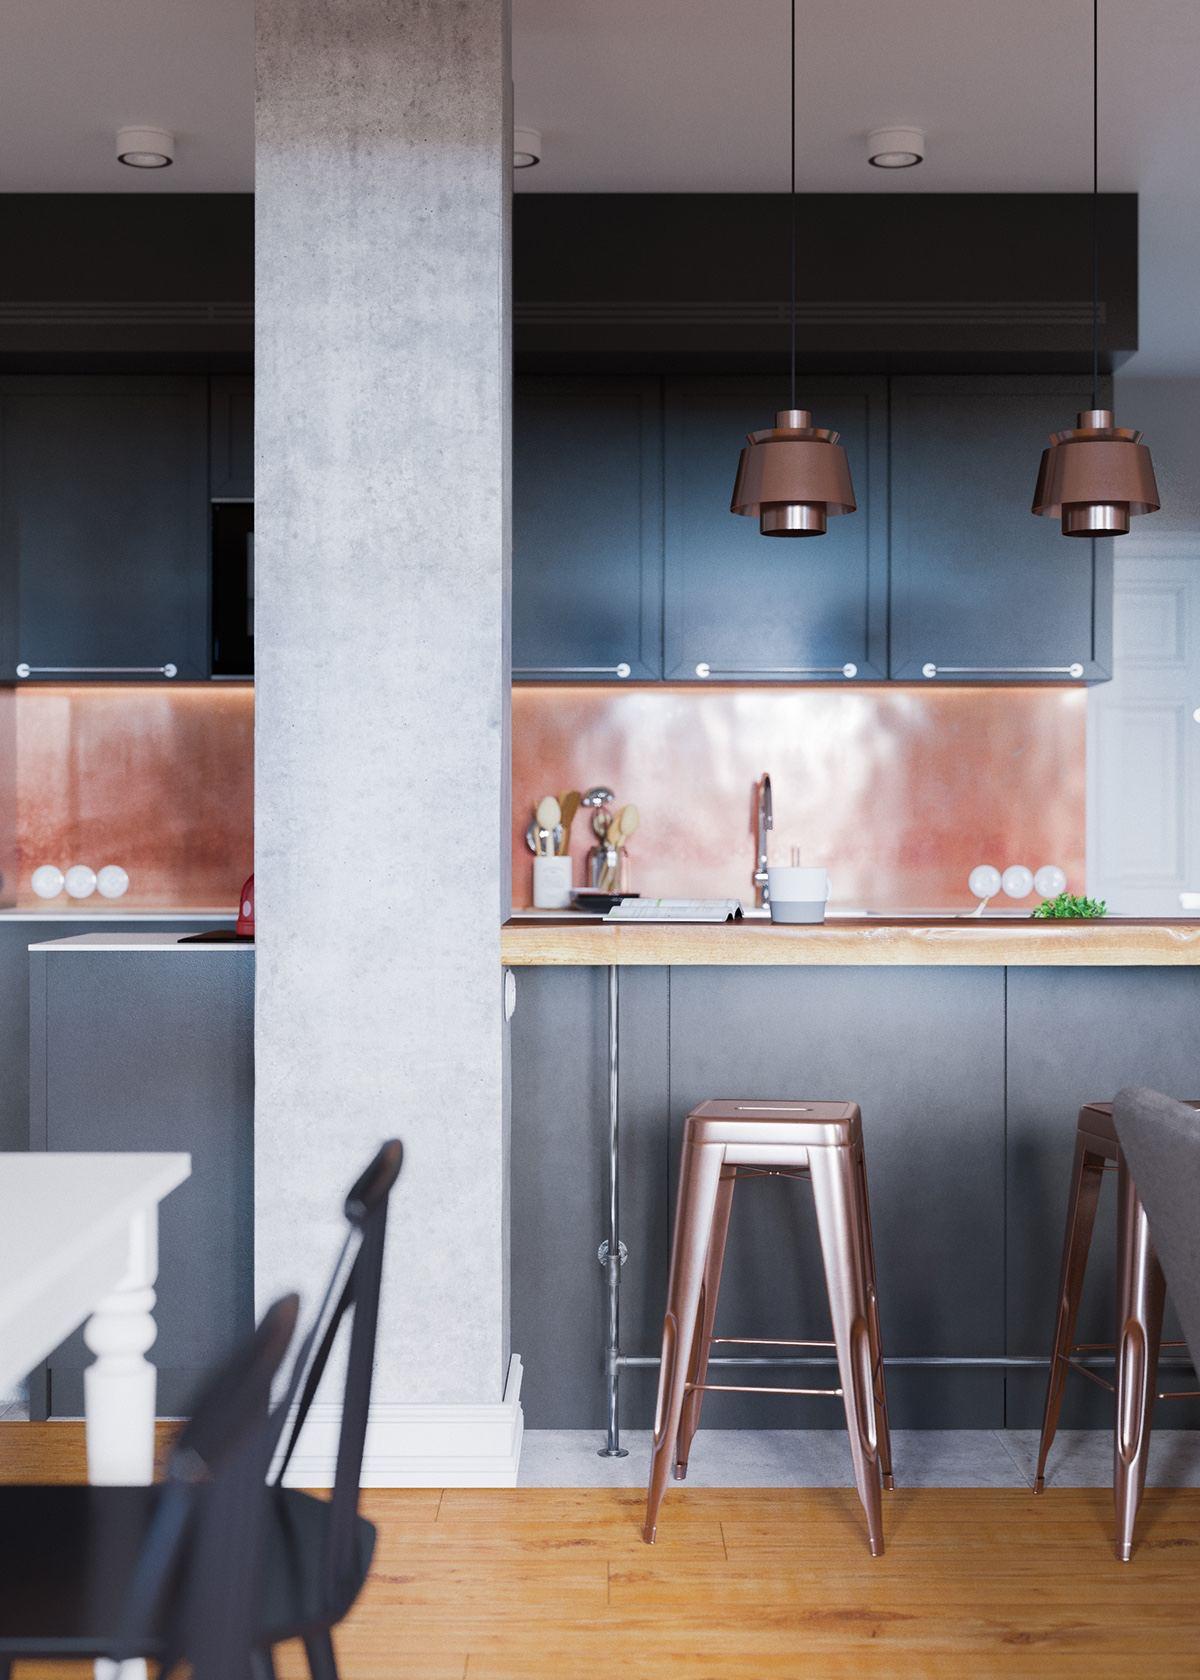 Claves_para_crear_contrastes_de_color_en_la_decoración_espacio_cocina_copper-and-black-kitchen-theme-min